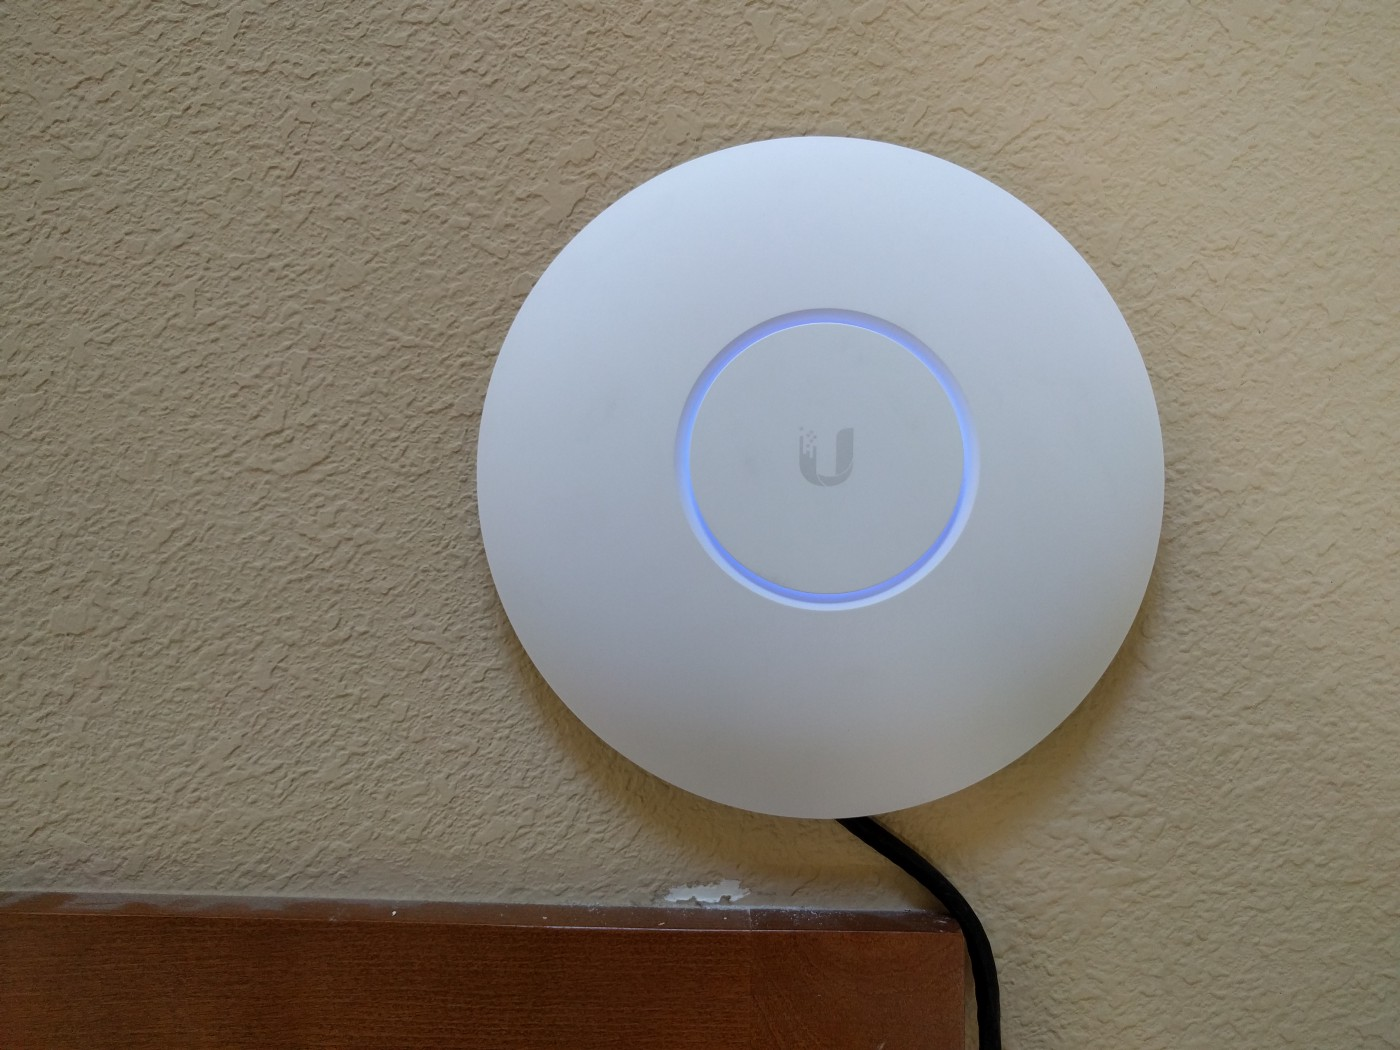 Network] Getting started with Ubiquiti EdgeRouter Lite + UniFi AP AC Pro